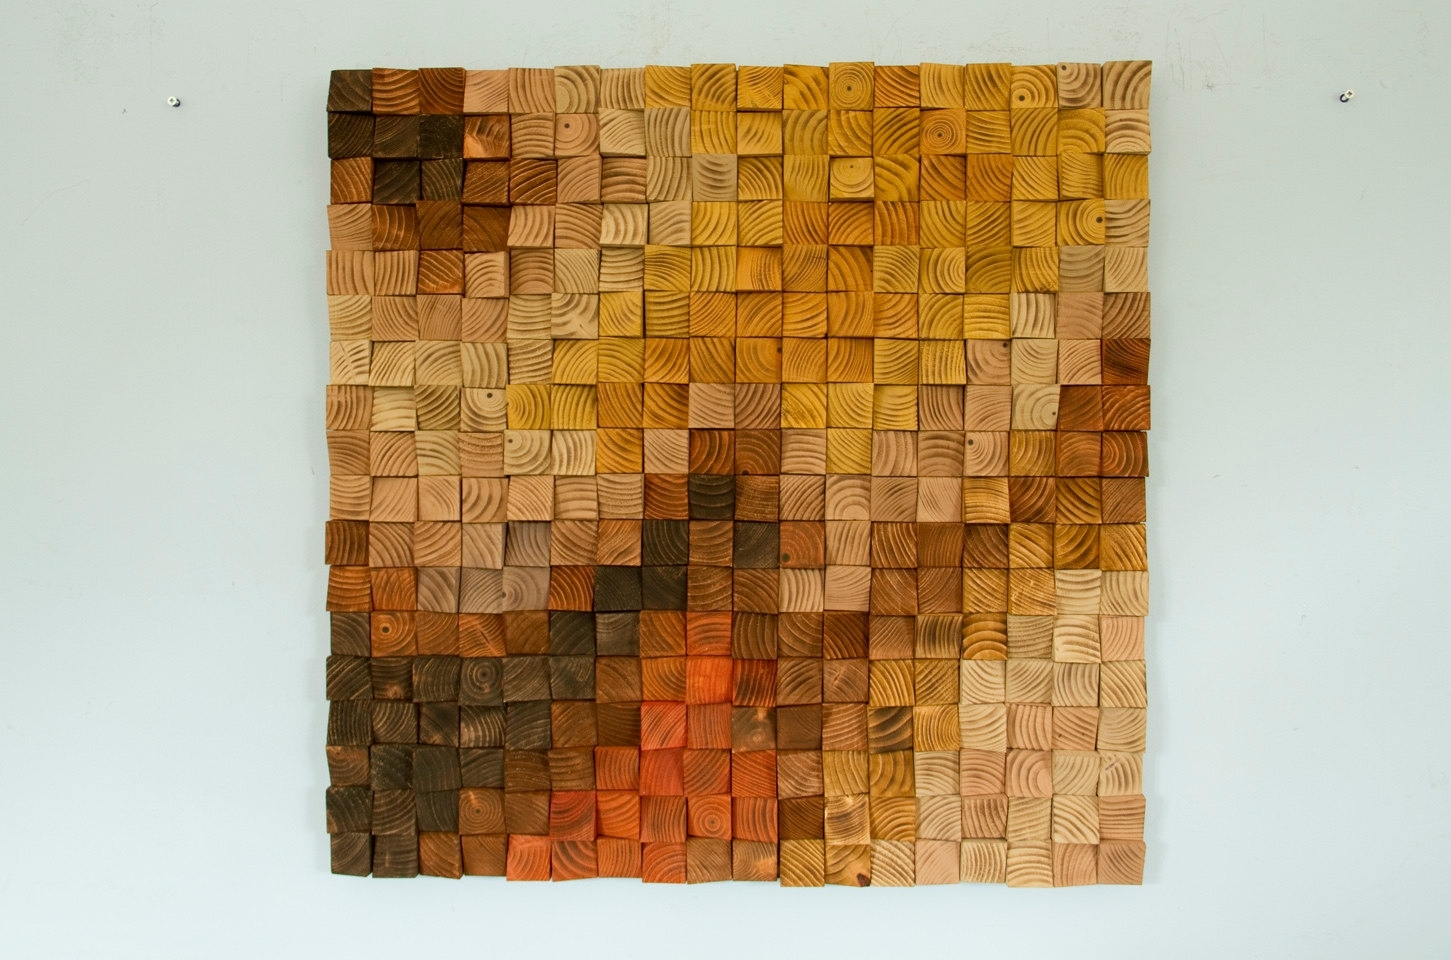 Large Rustic Wood Wall Art, Wood Wall Sculpture, Abstract Painting Throughout Latest Sculpture Abstract Wall Art (View 7 of 20)